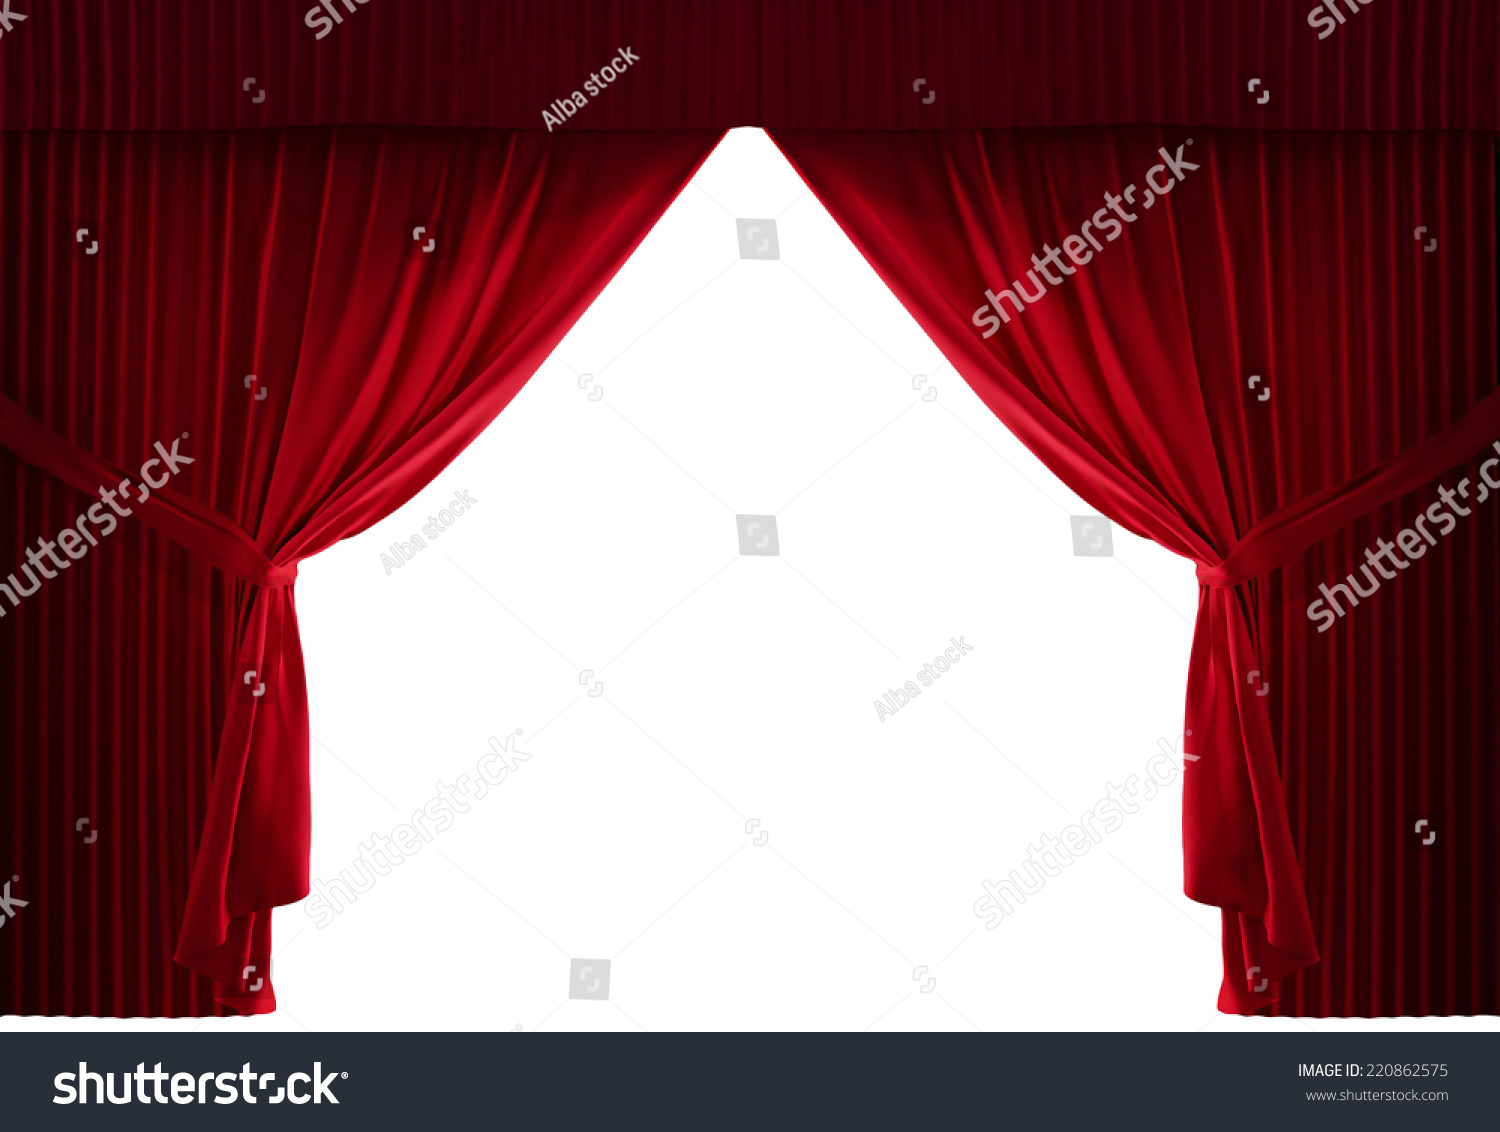 Black stage curtains black stage curtain - Realistic Stage Curtains With A Black Background